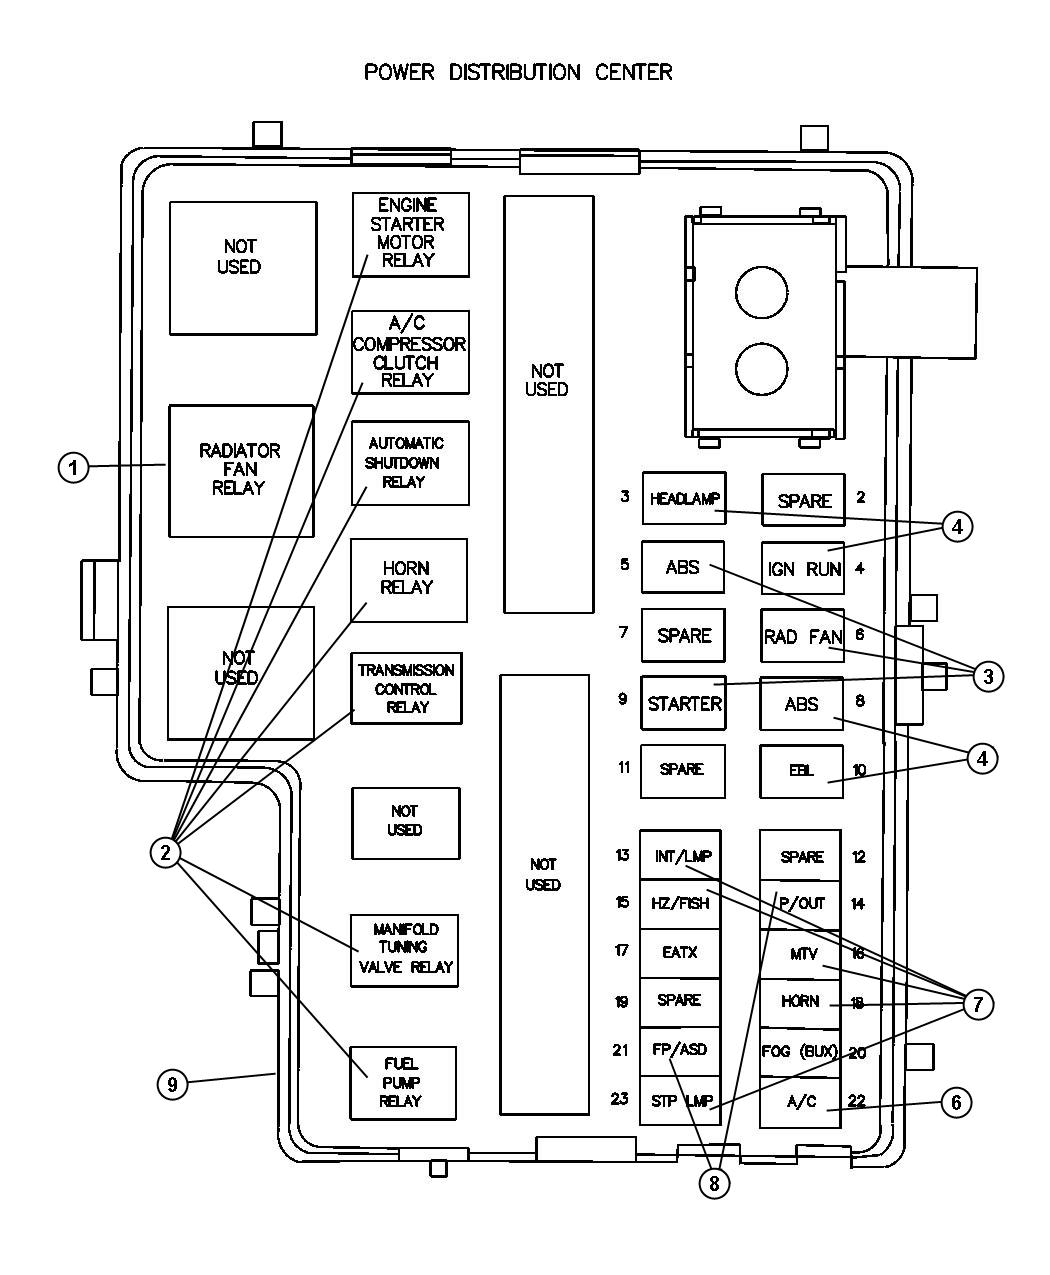 hight resolution of 2000 dodge neon fuse box diagram wiring diagrams second2000 dodge neon fuse box diagram wiring diagram